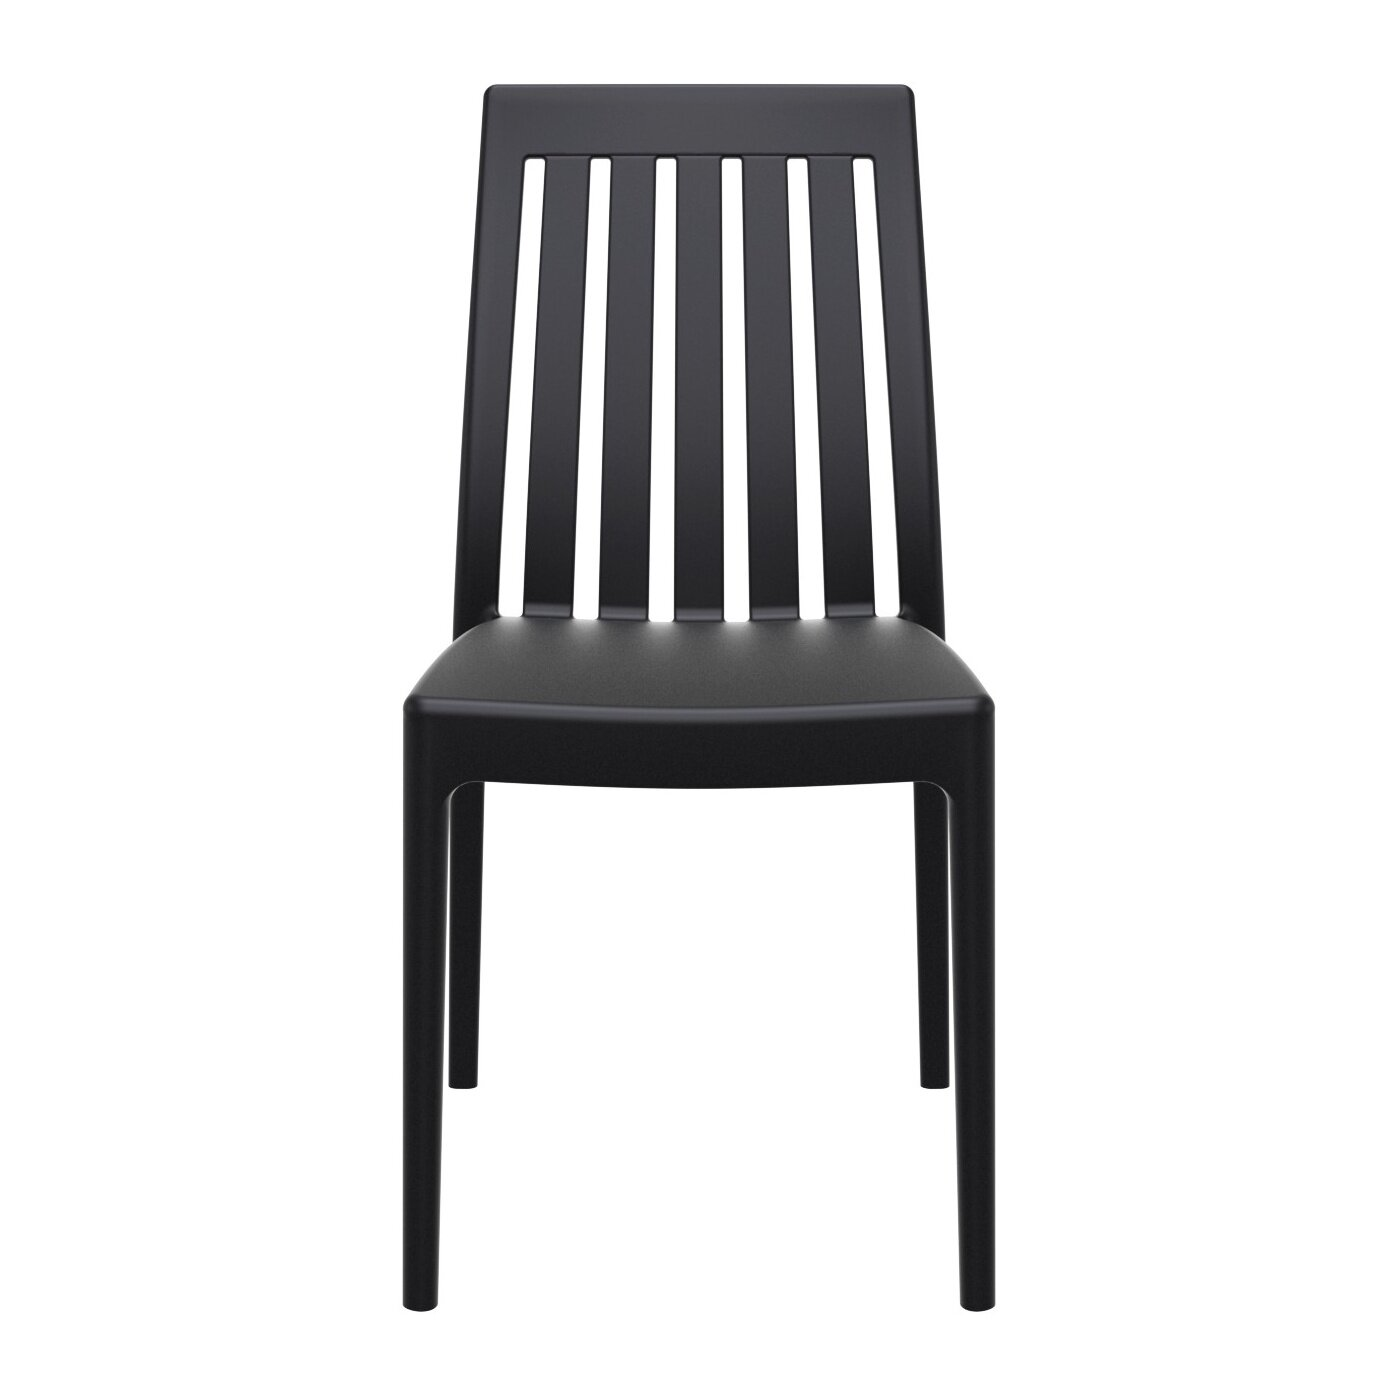 Mcgregor Stacking Patio Dining Chair